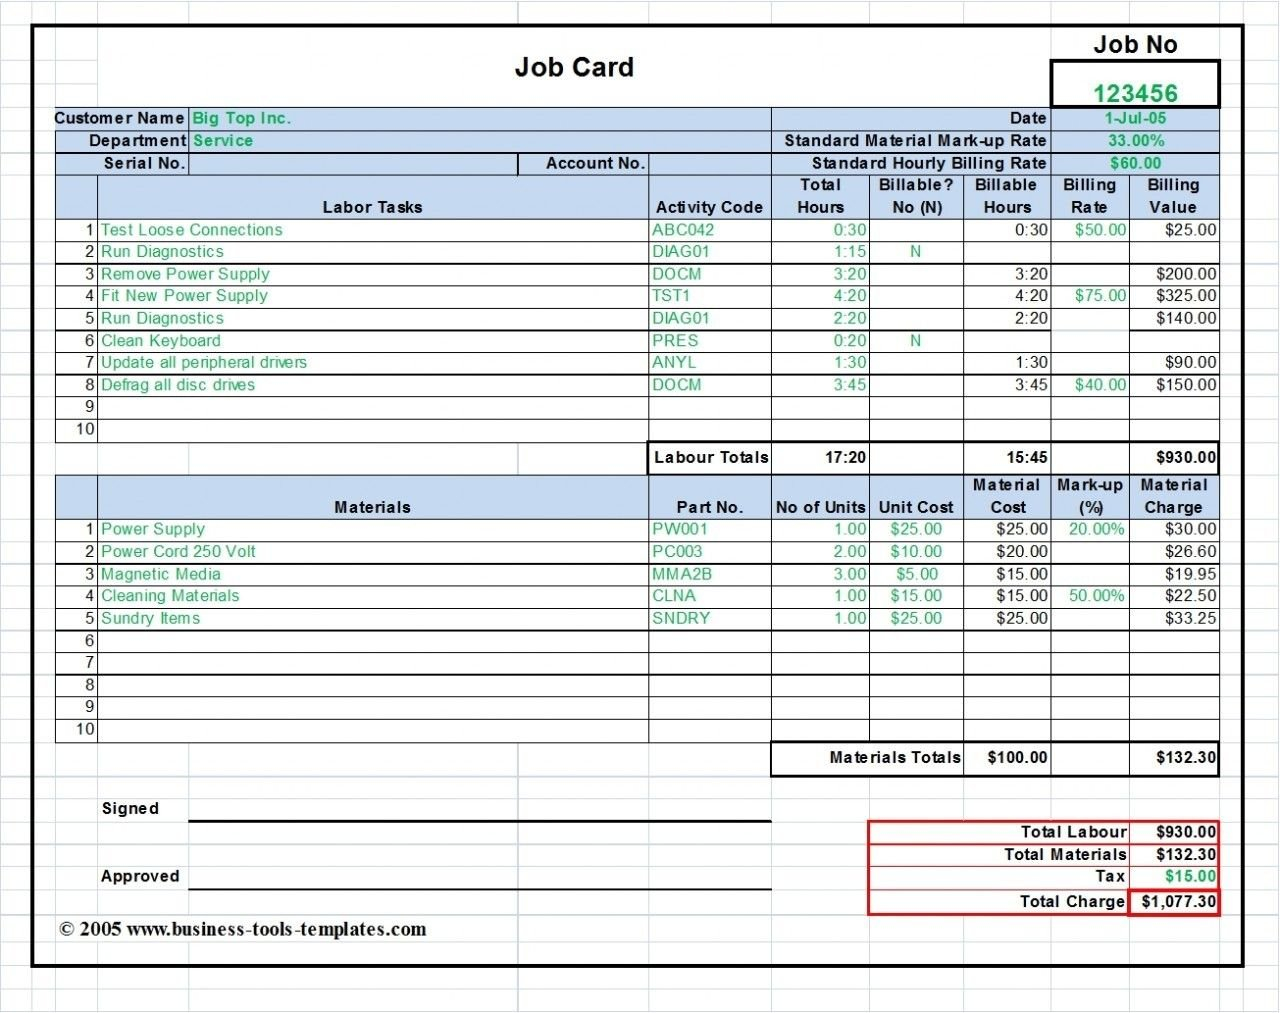 Workshop Job Card Template Excel, Labor & Material Cost Estimator ... With Regard To Labor And Material Cost Spreadsheet